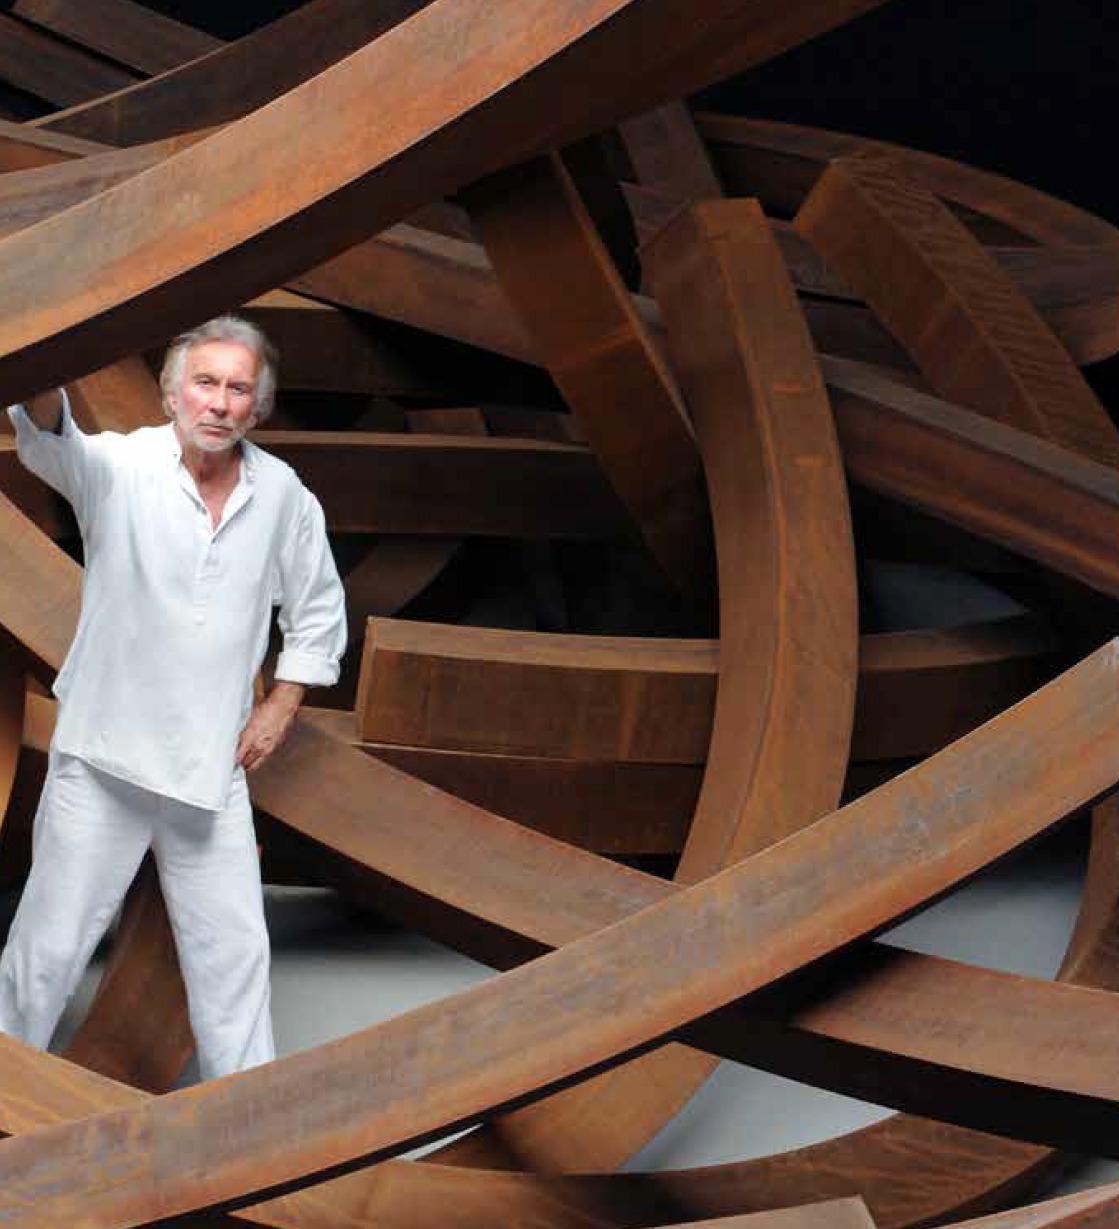 Bernar Venet and his Effondrement : 200 tonnes, Le Muy, 2017